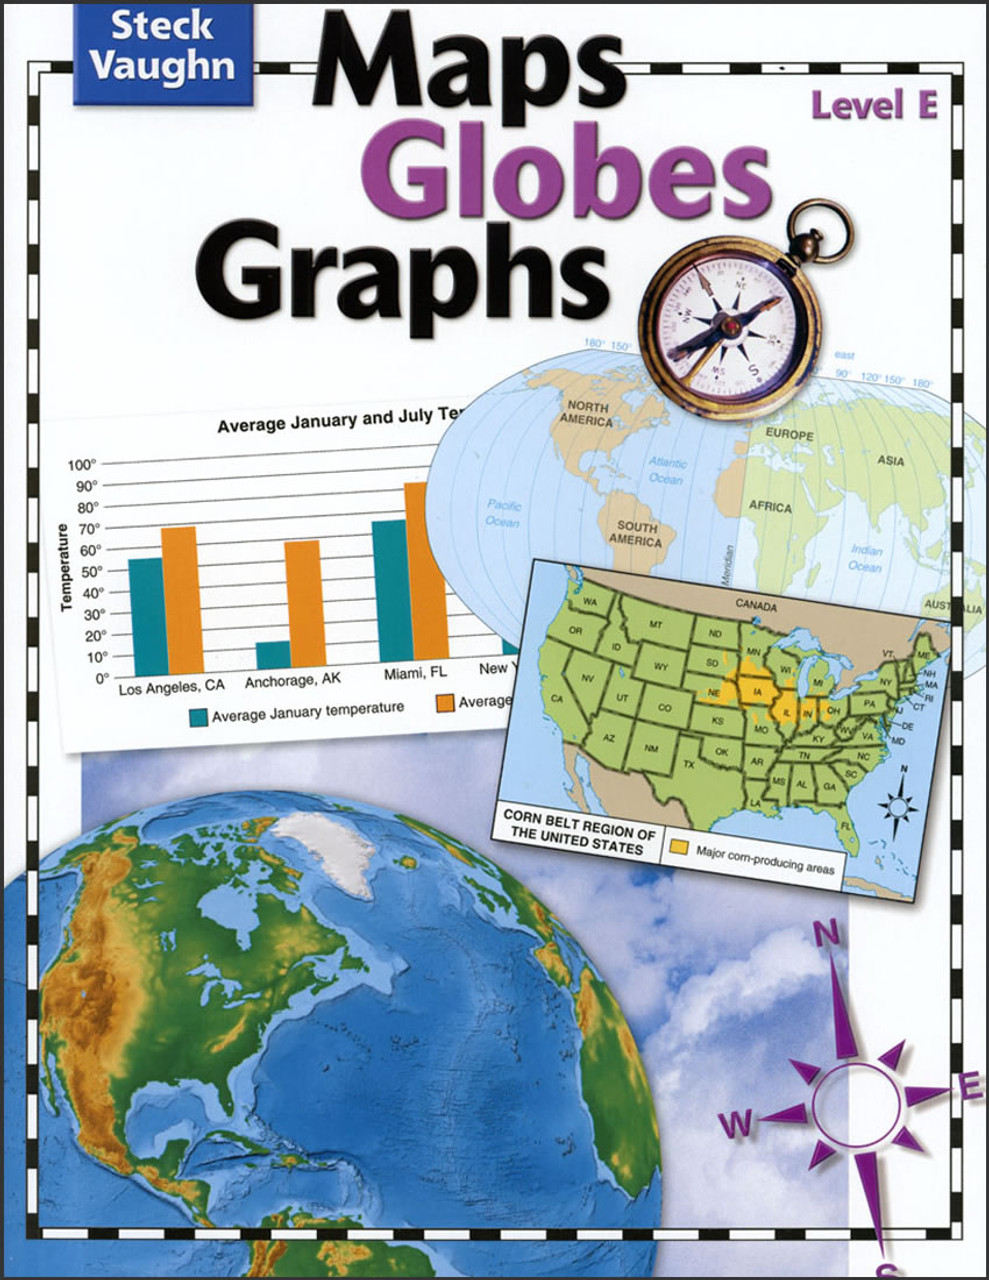 Maps, Globes, Graphs: Level E